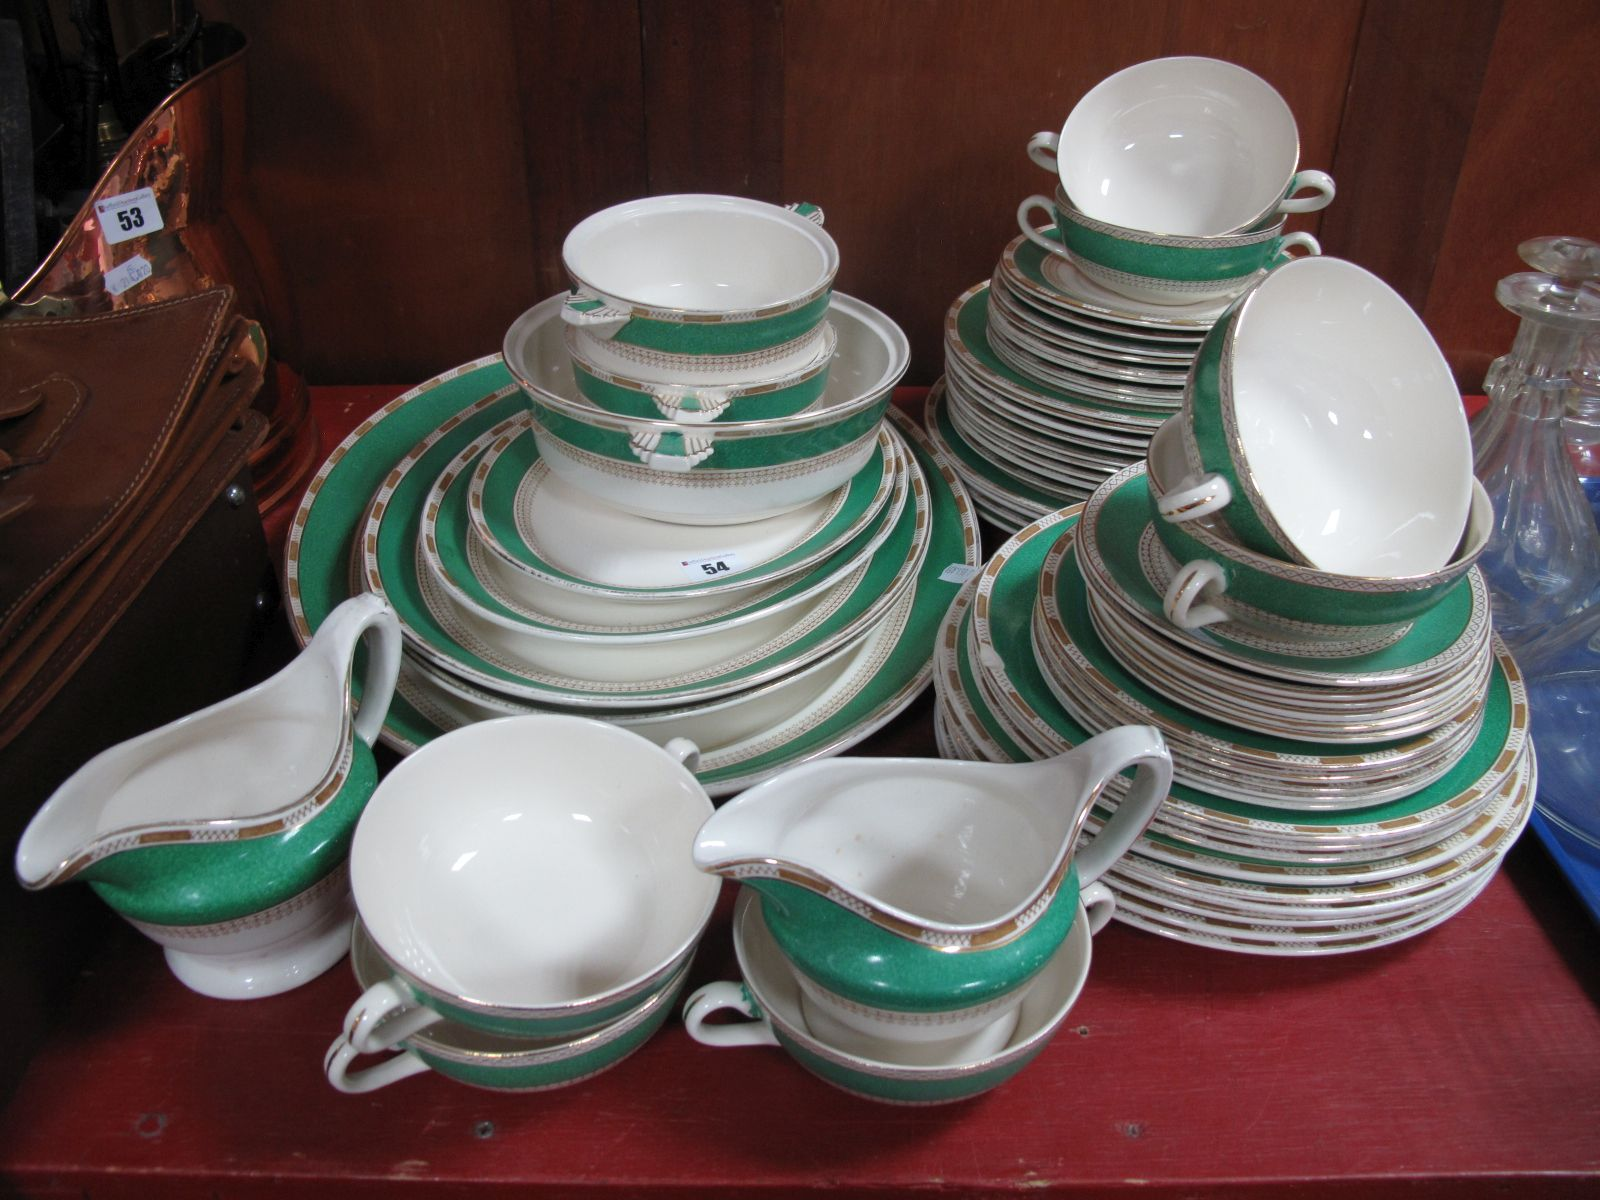 Lot 54 - Losol Green and Gilt Banded Dinner Ware, of approximately fifty-eight pieces.